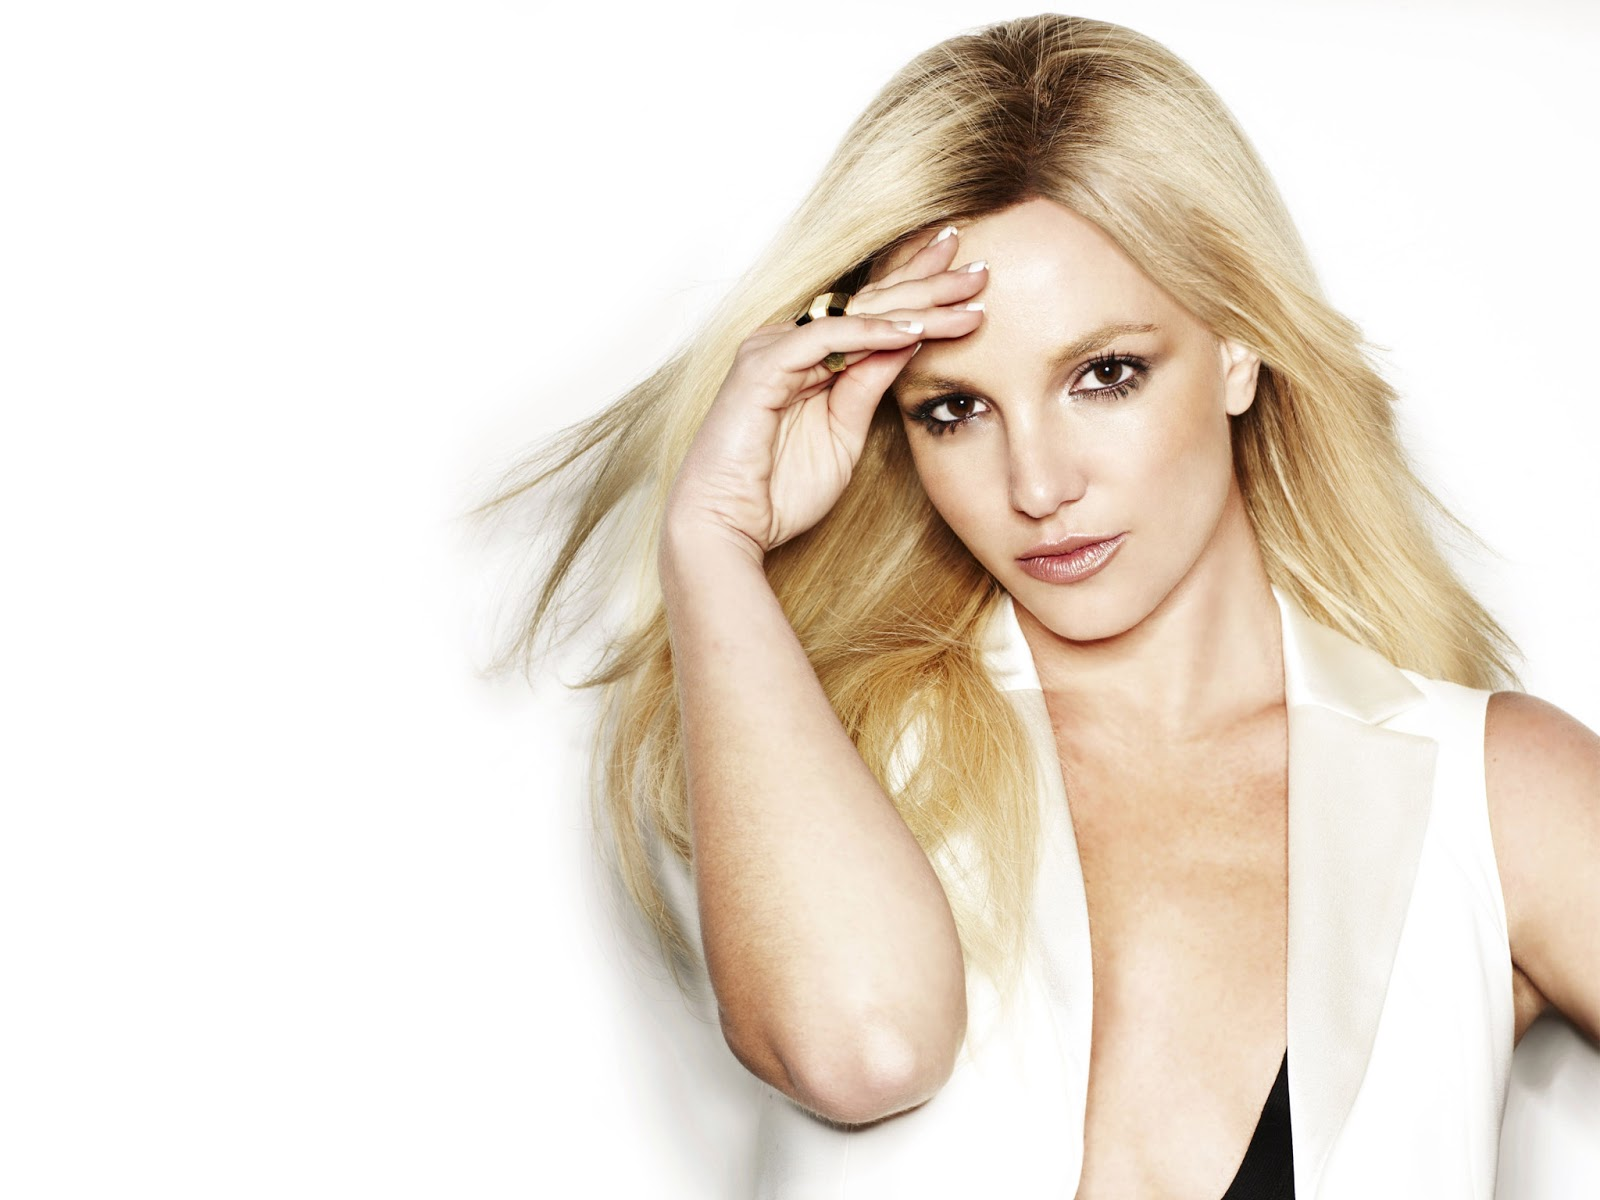 Britney Spears New Hd Wallpapers 2013 World Celebrities Hd Wallpapers